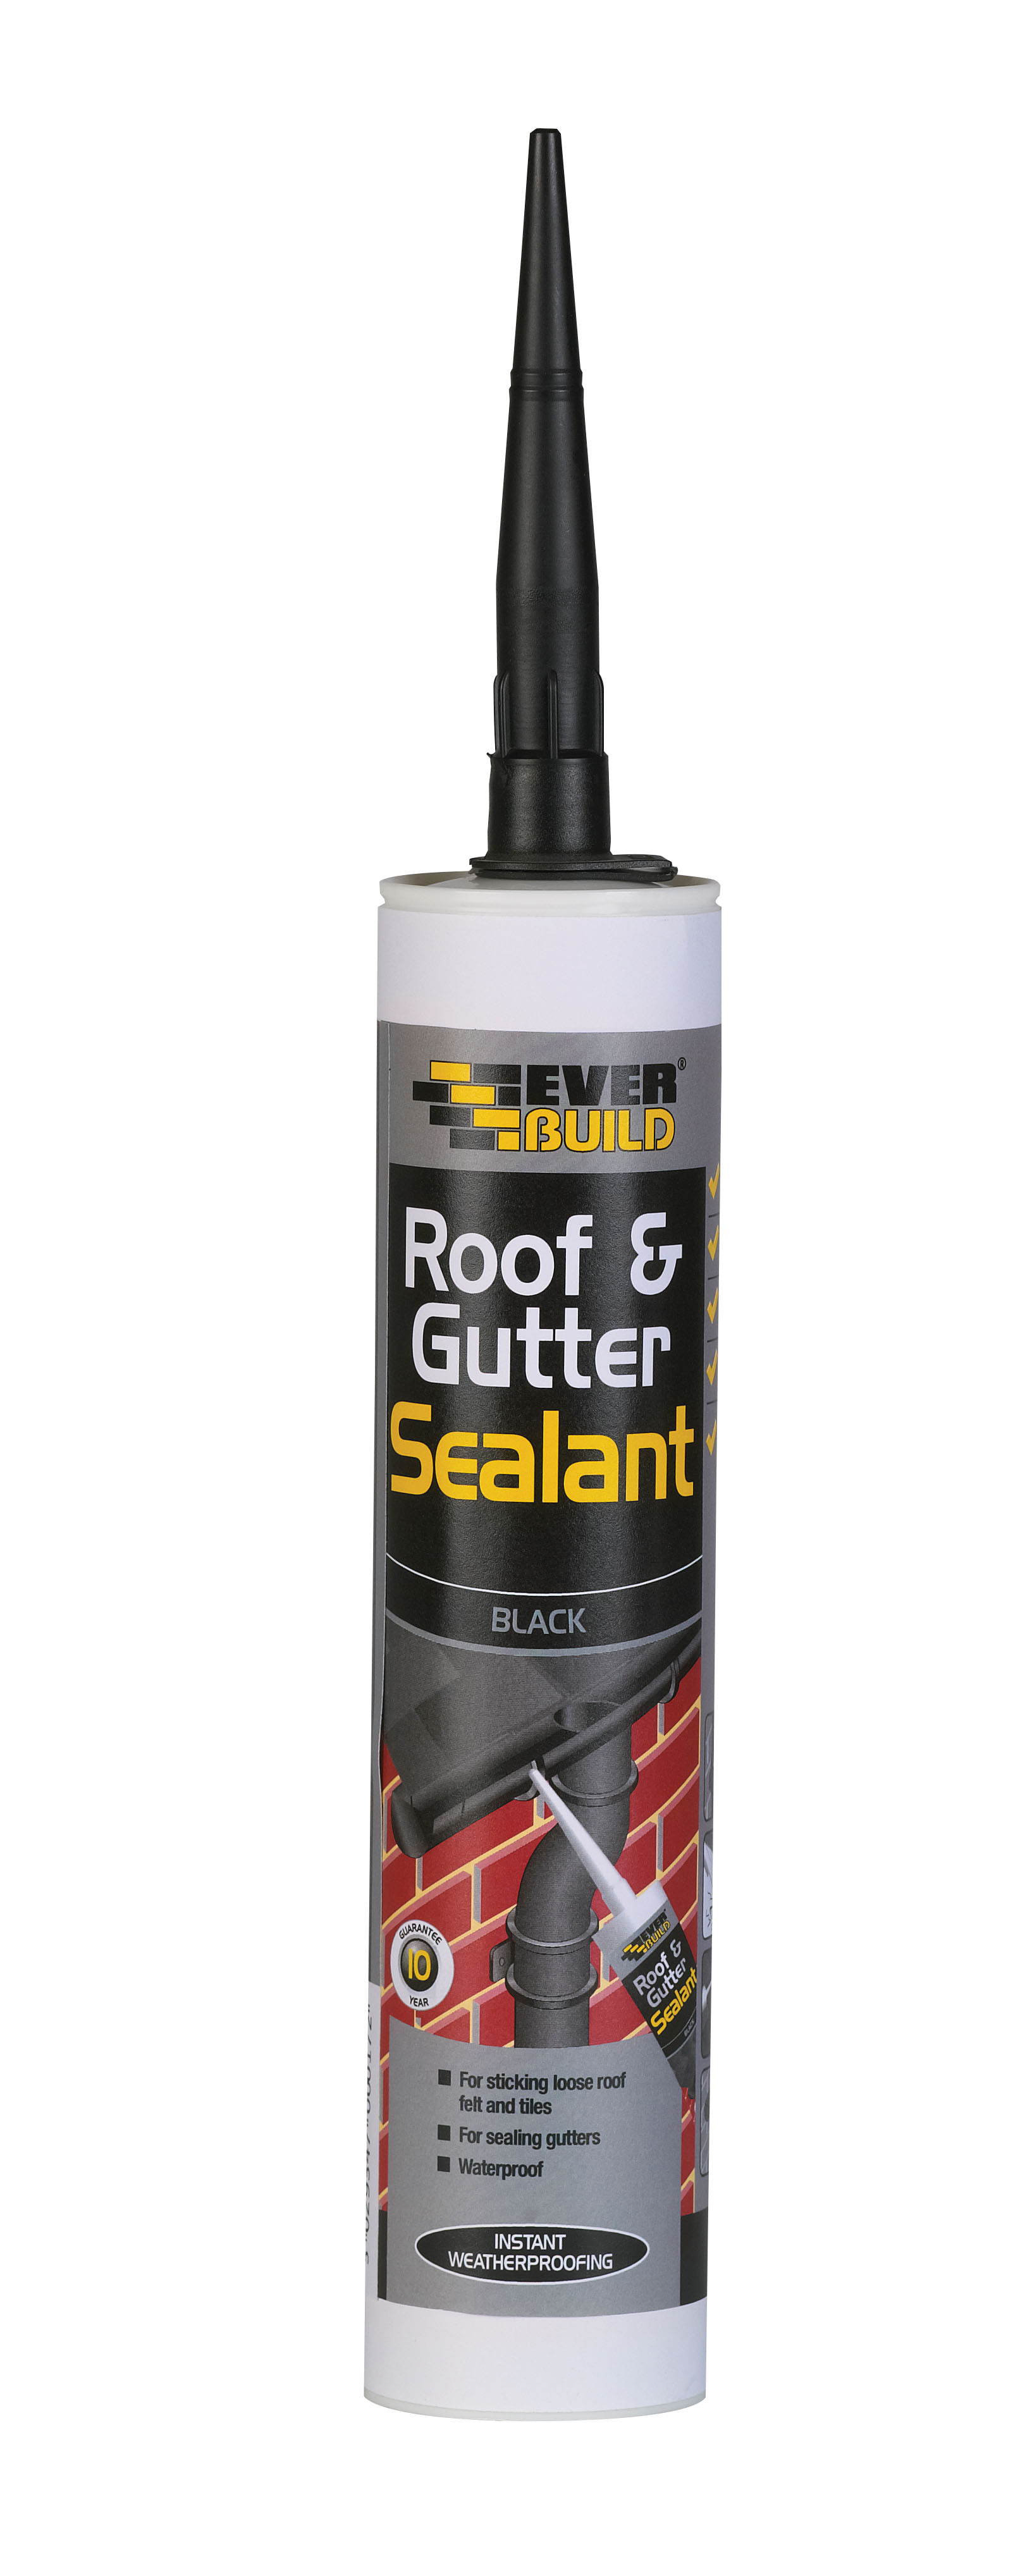 310ml Black Roof & Gutter Sealant